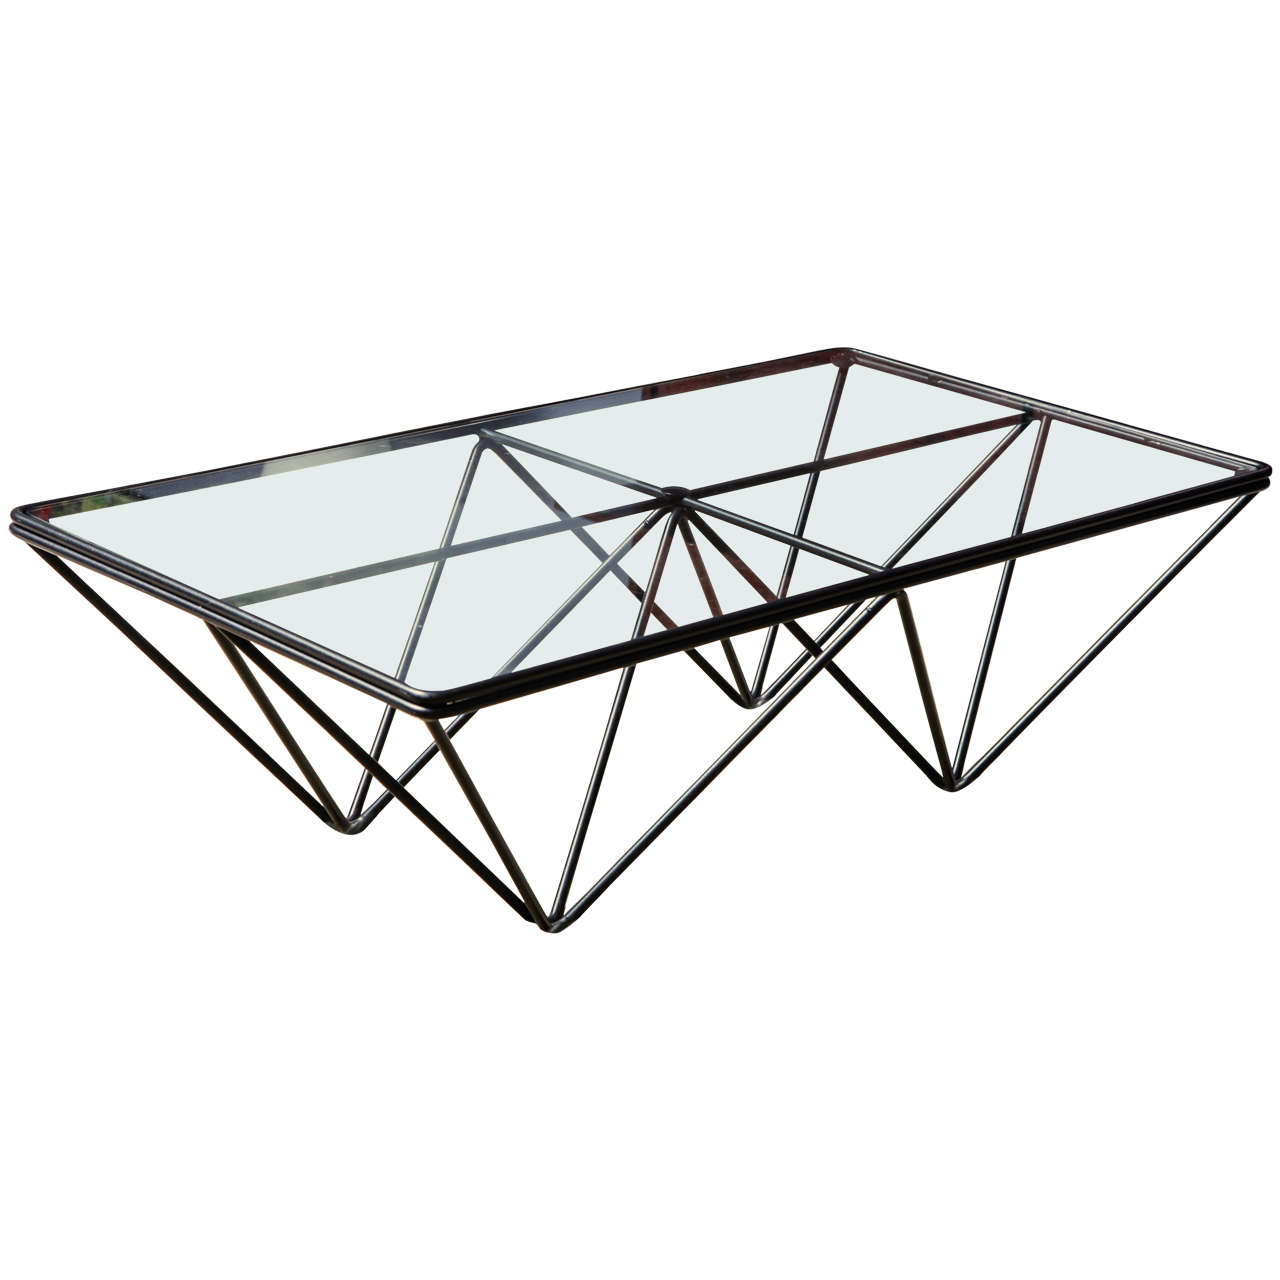 Alanda Table By Paolo Piva At 1stdibs